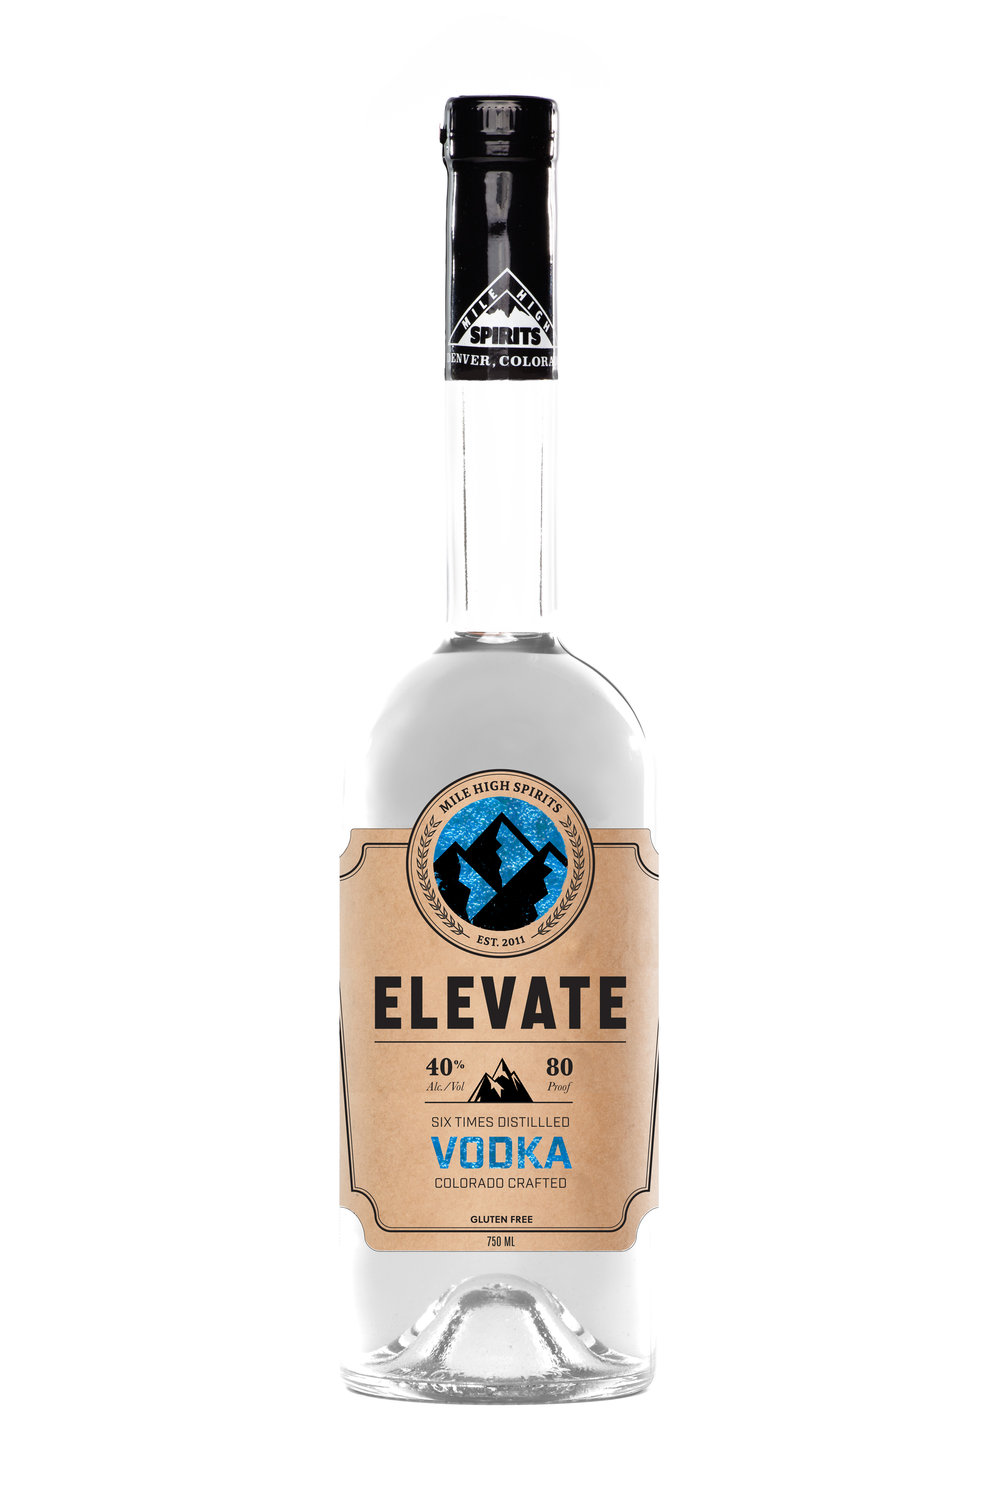 Elevate Vodka Boasting one of the cleanest finishes in the modern vodka realm, Elevate's six-time distillation process offers a product that is incomparable to any other brand on the market. Using one of the only glass stills in the world, Elevate Vodka claims an unrivaled answer to the question of a perfect martini. Rocky Mountain H2O ensures unparalleled standards in water.